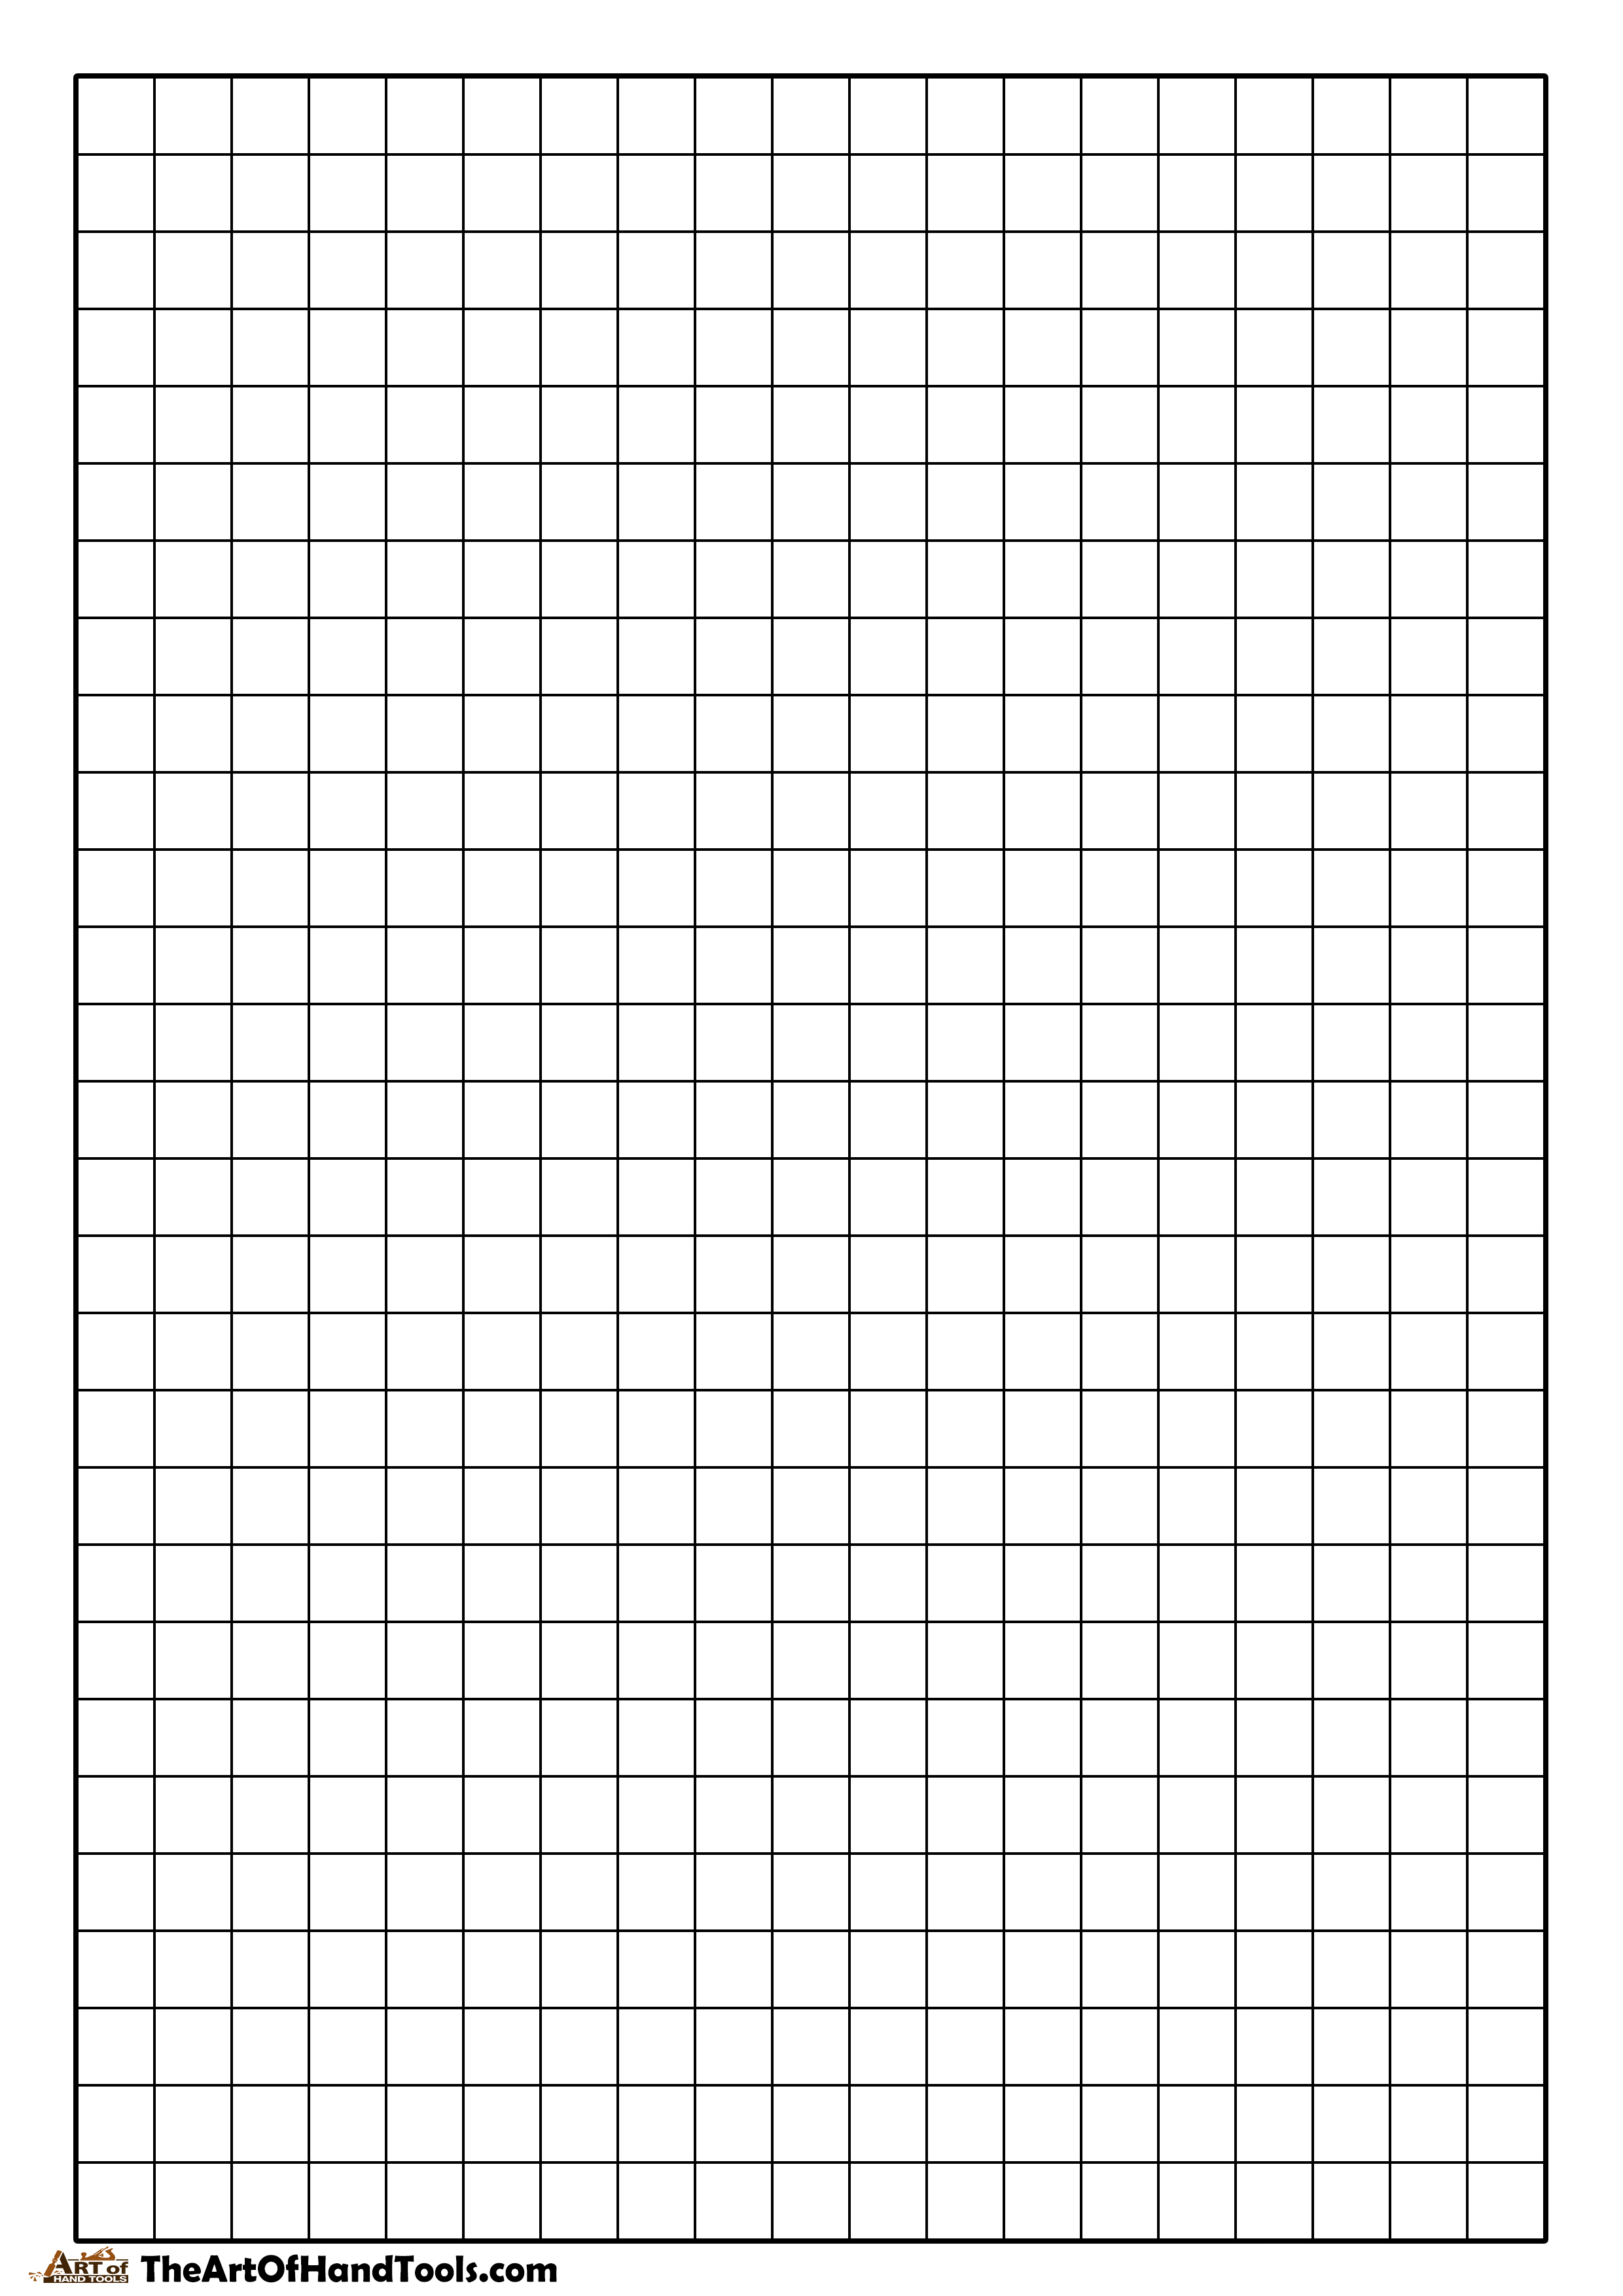 Blank Graph Paper Ready For Shop Layout. Head Over To The Below Link - Half Inch Grid Paper Free Printable